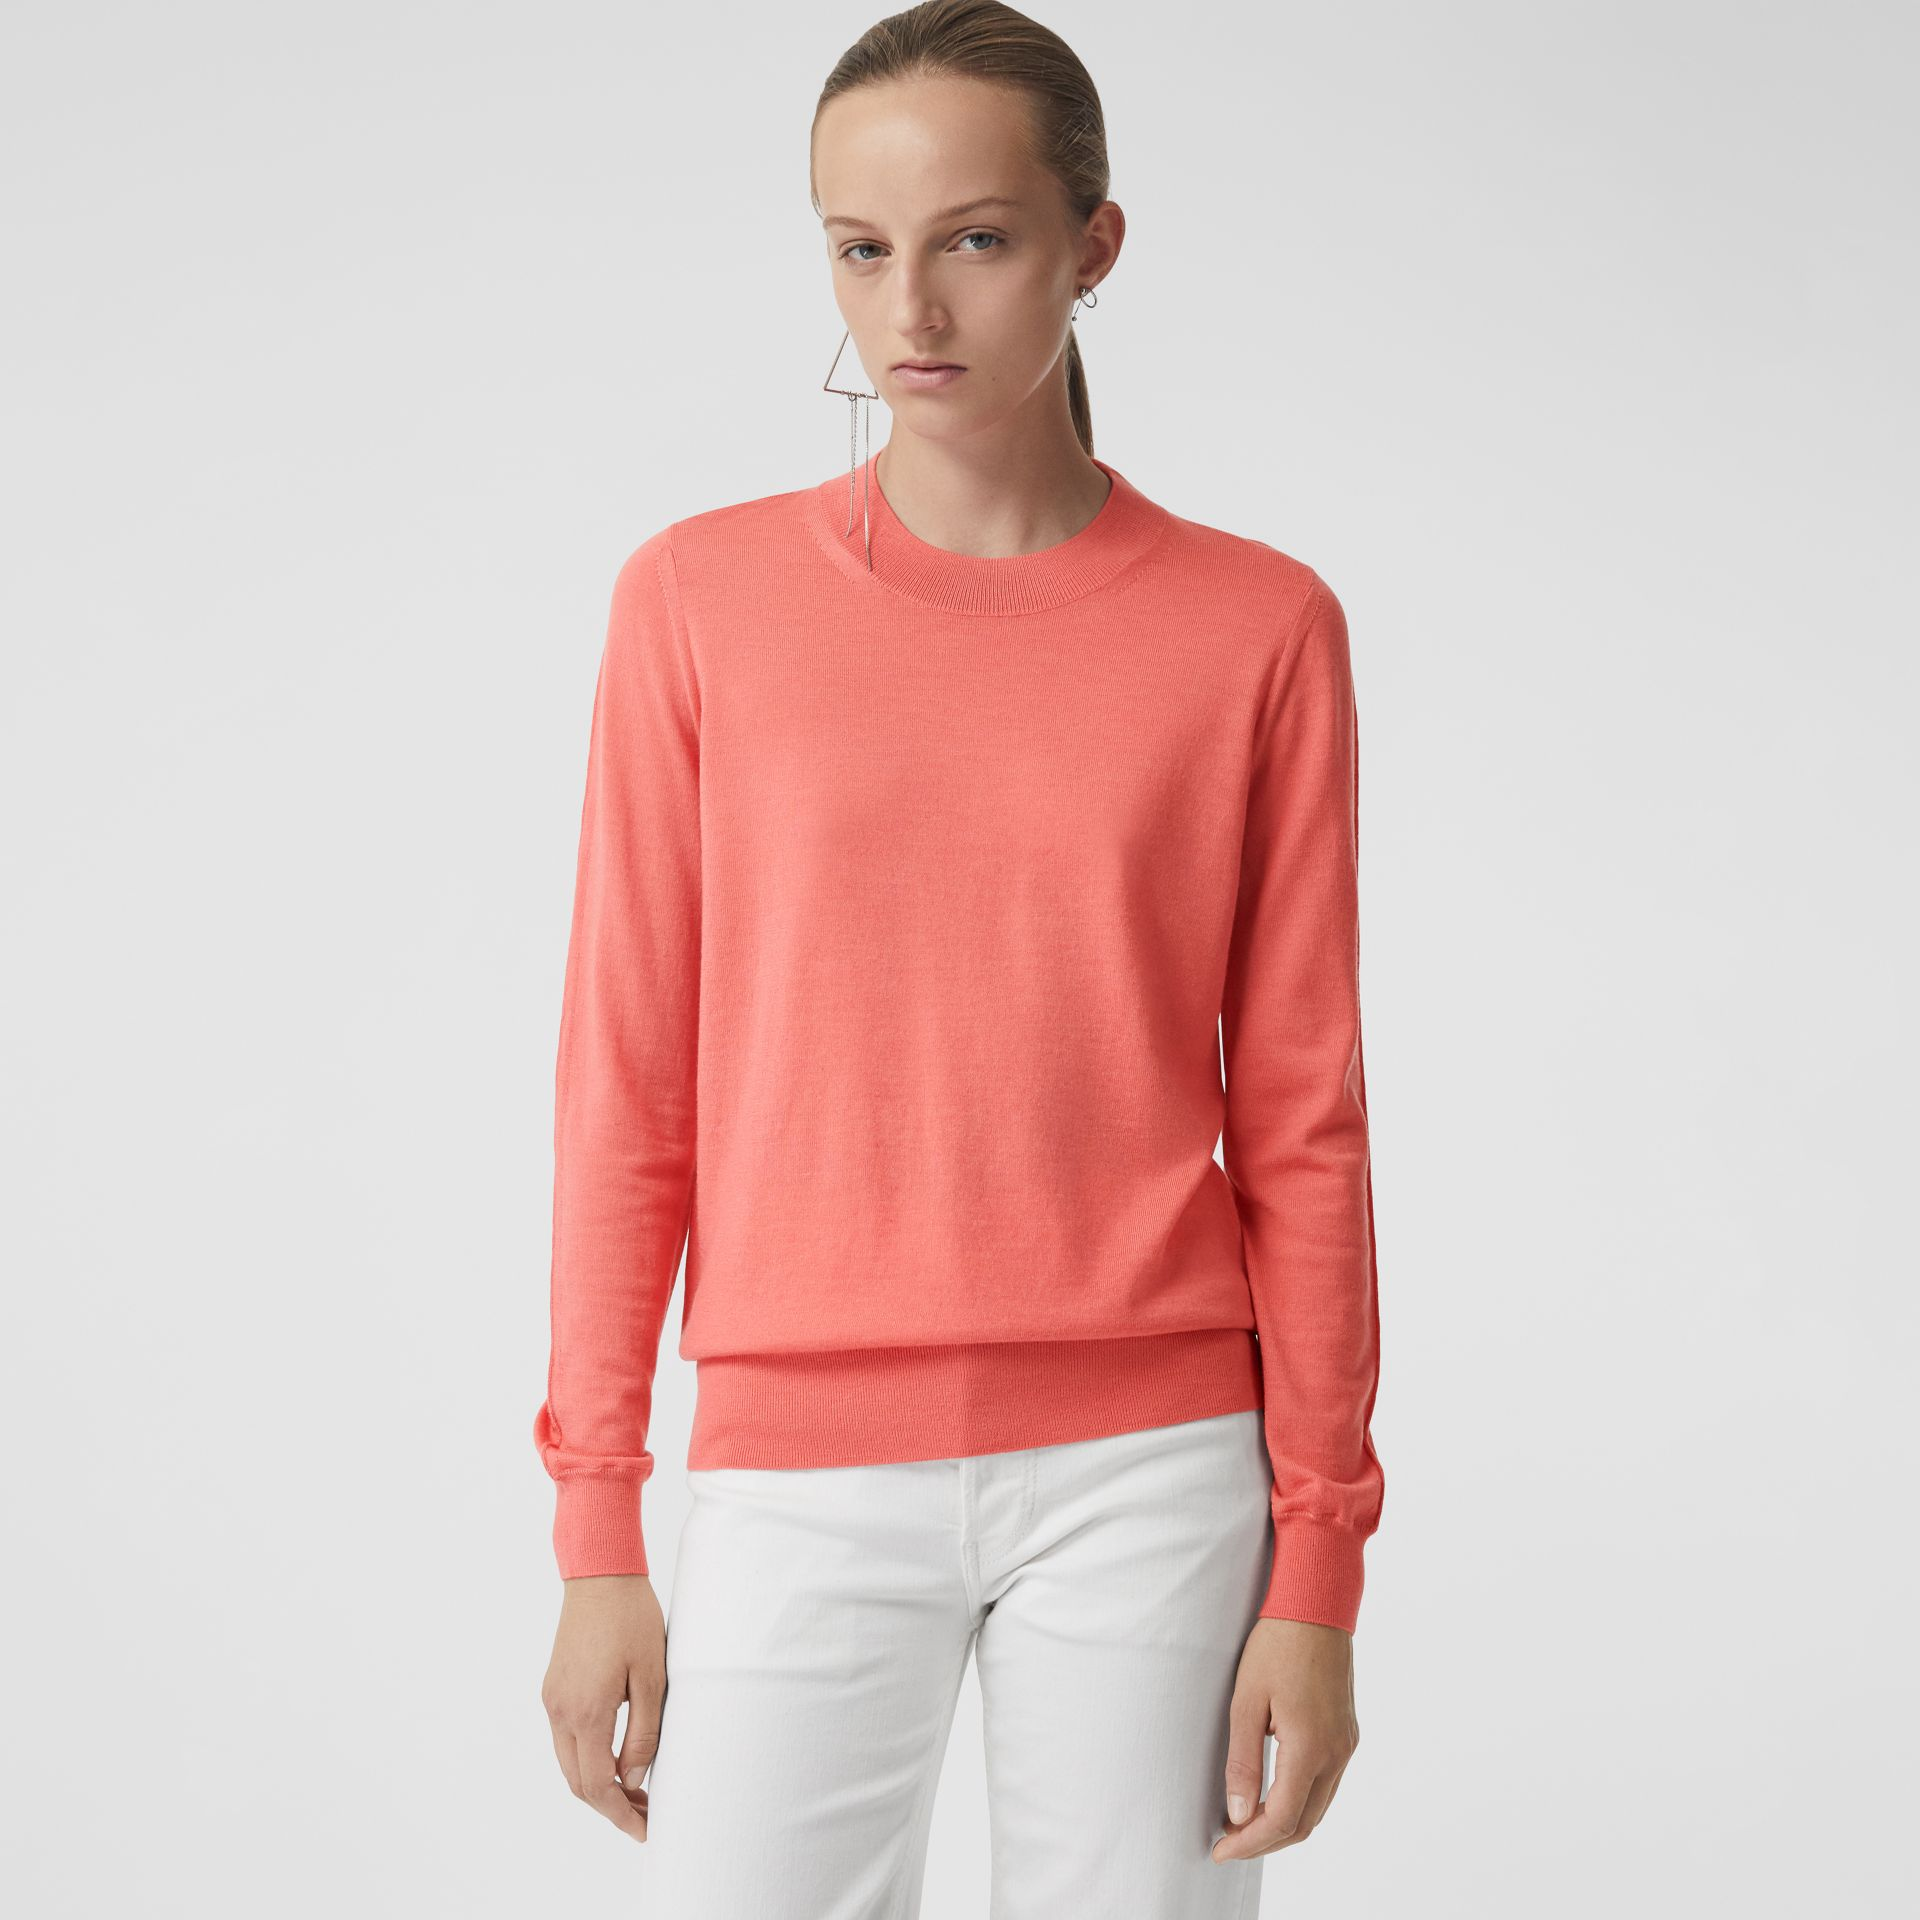 Merino Wool Crew Neck Sweater in Coral - Women | Burberry - gallery image 4